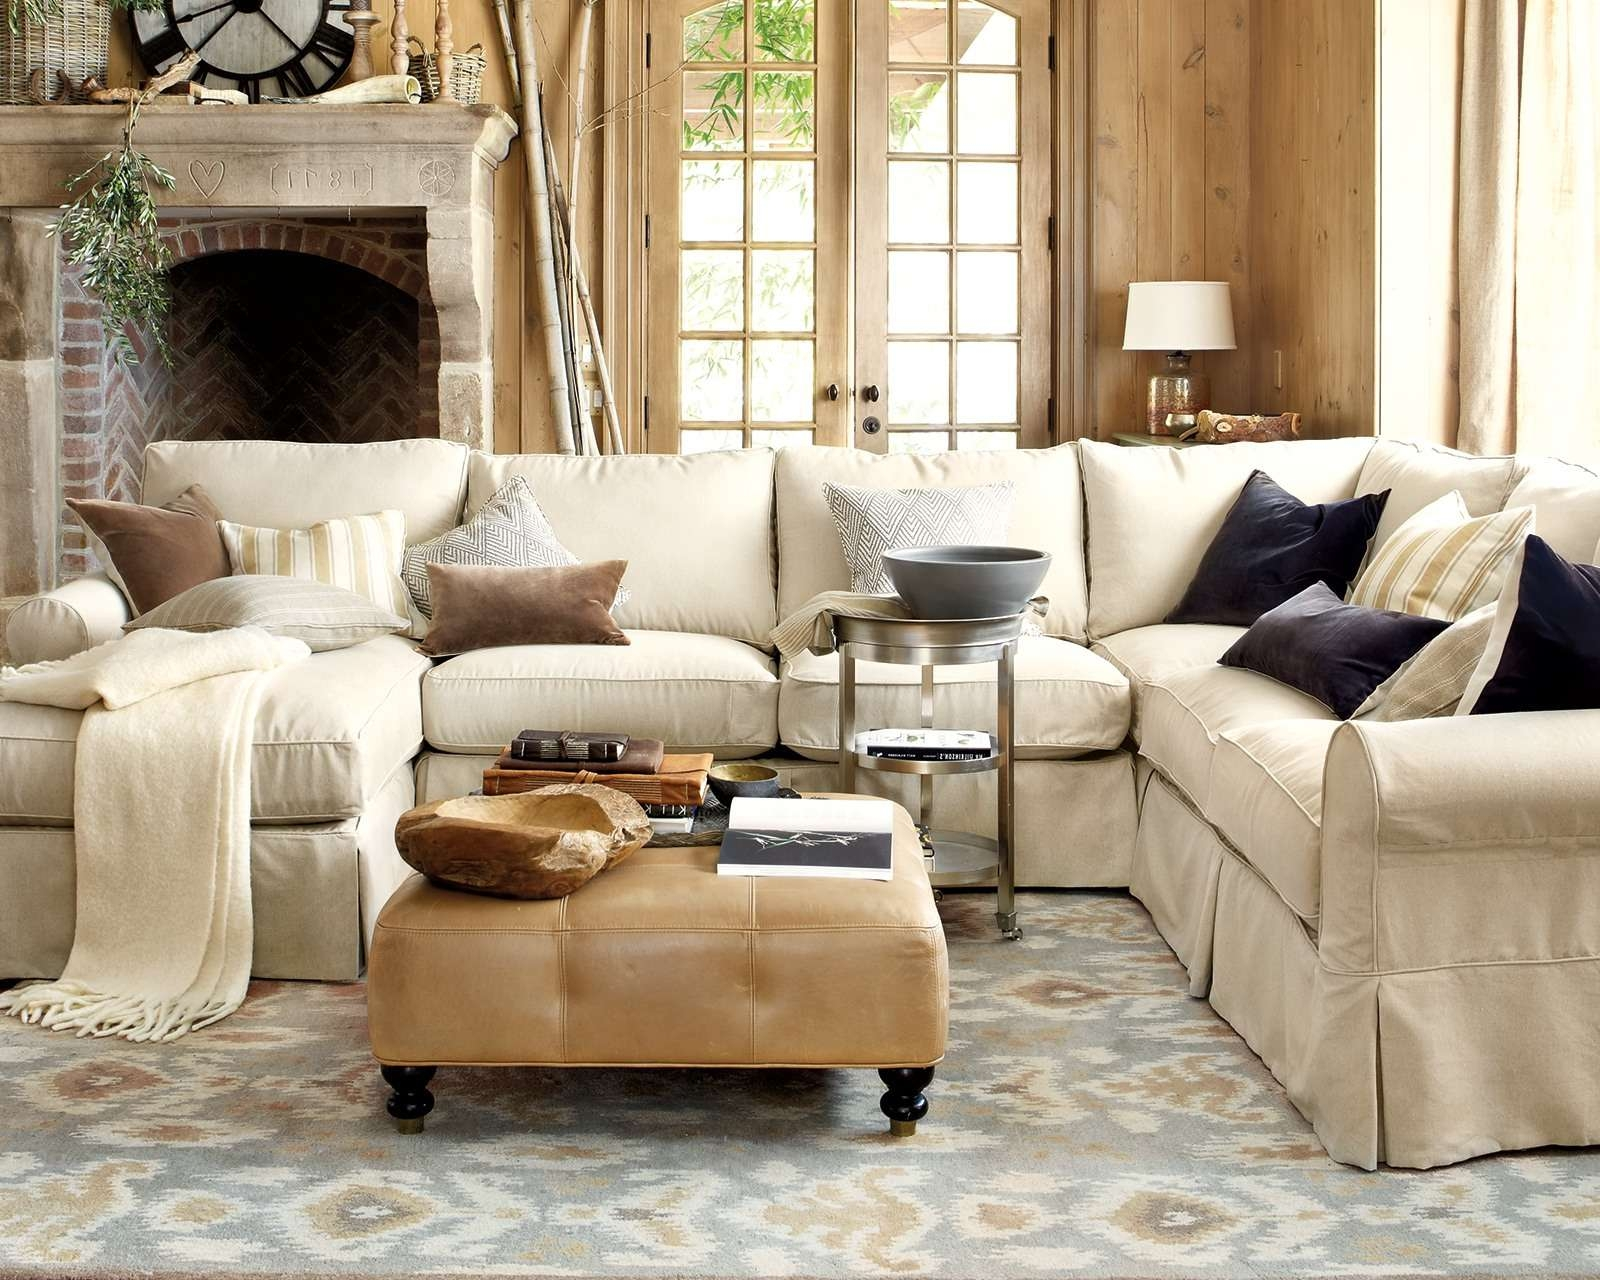 How To Match A Coffee Table To Your Sectional – How To Decorate In Well Known Coffee Table For Sectional Sofa (View 5 of 20)